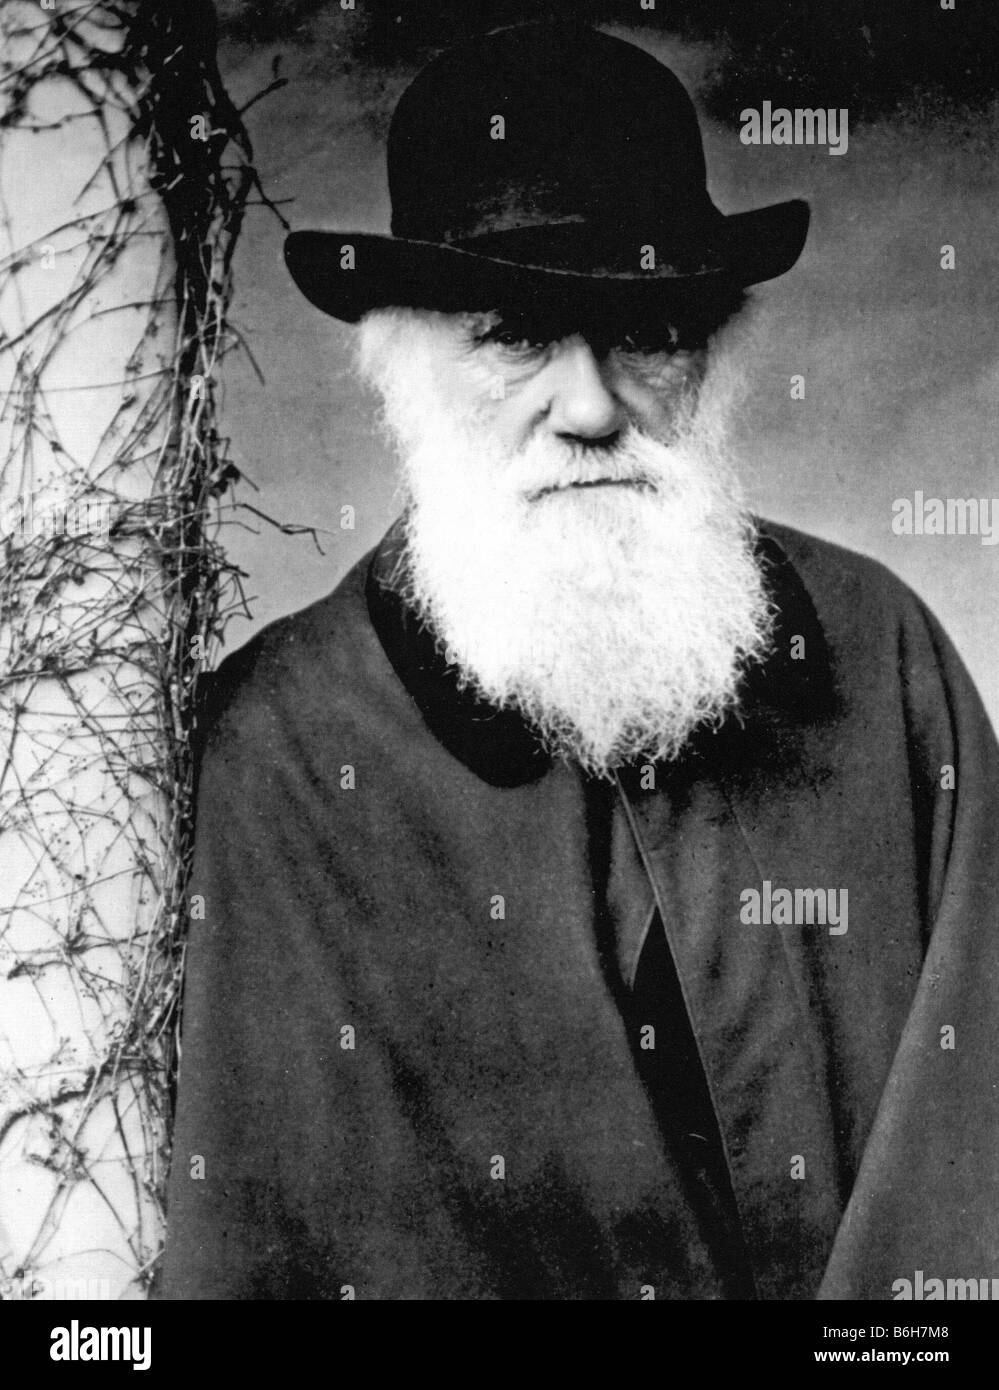 CHARLES DARWIN aged 72 photographed by Julia Margaret Cameron in 1881 Stock Photo